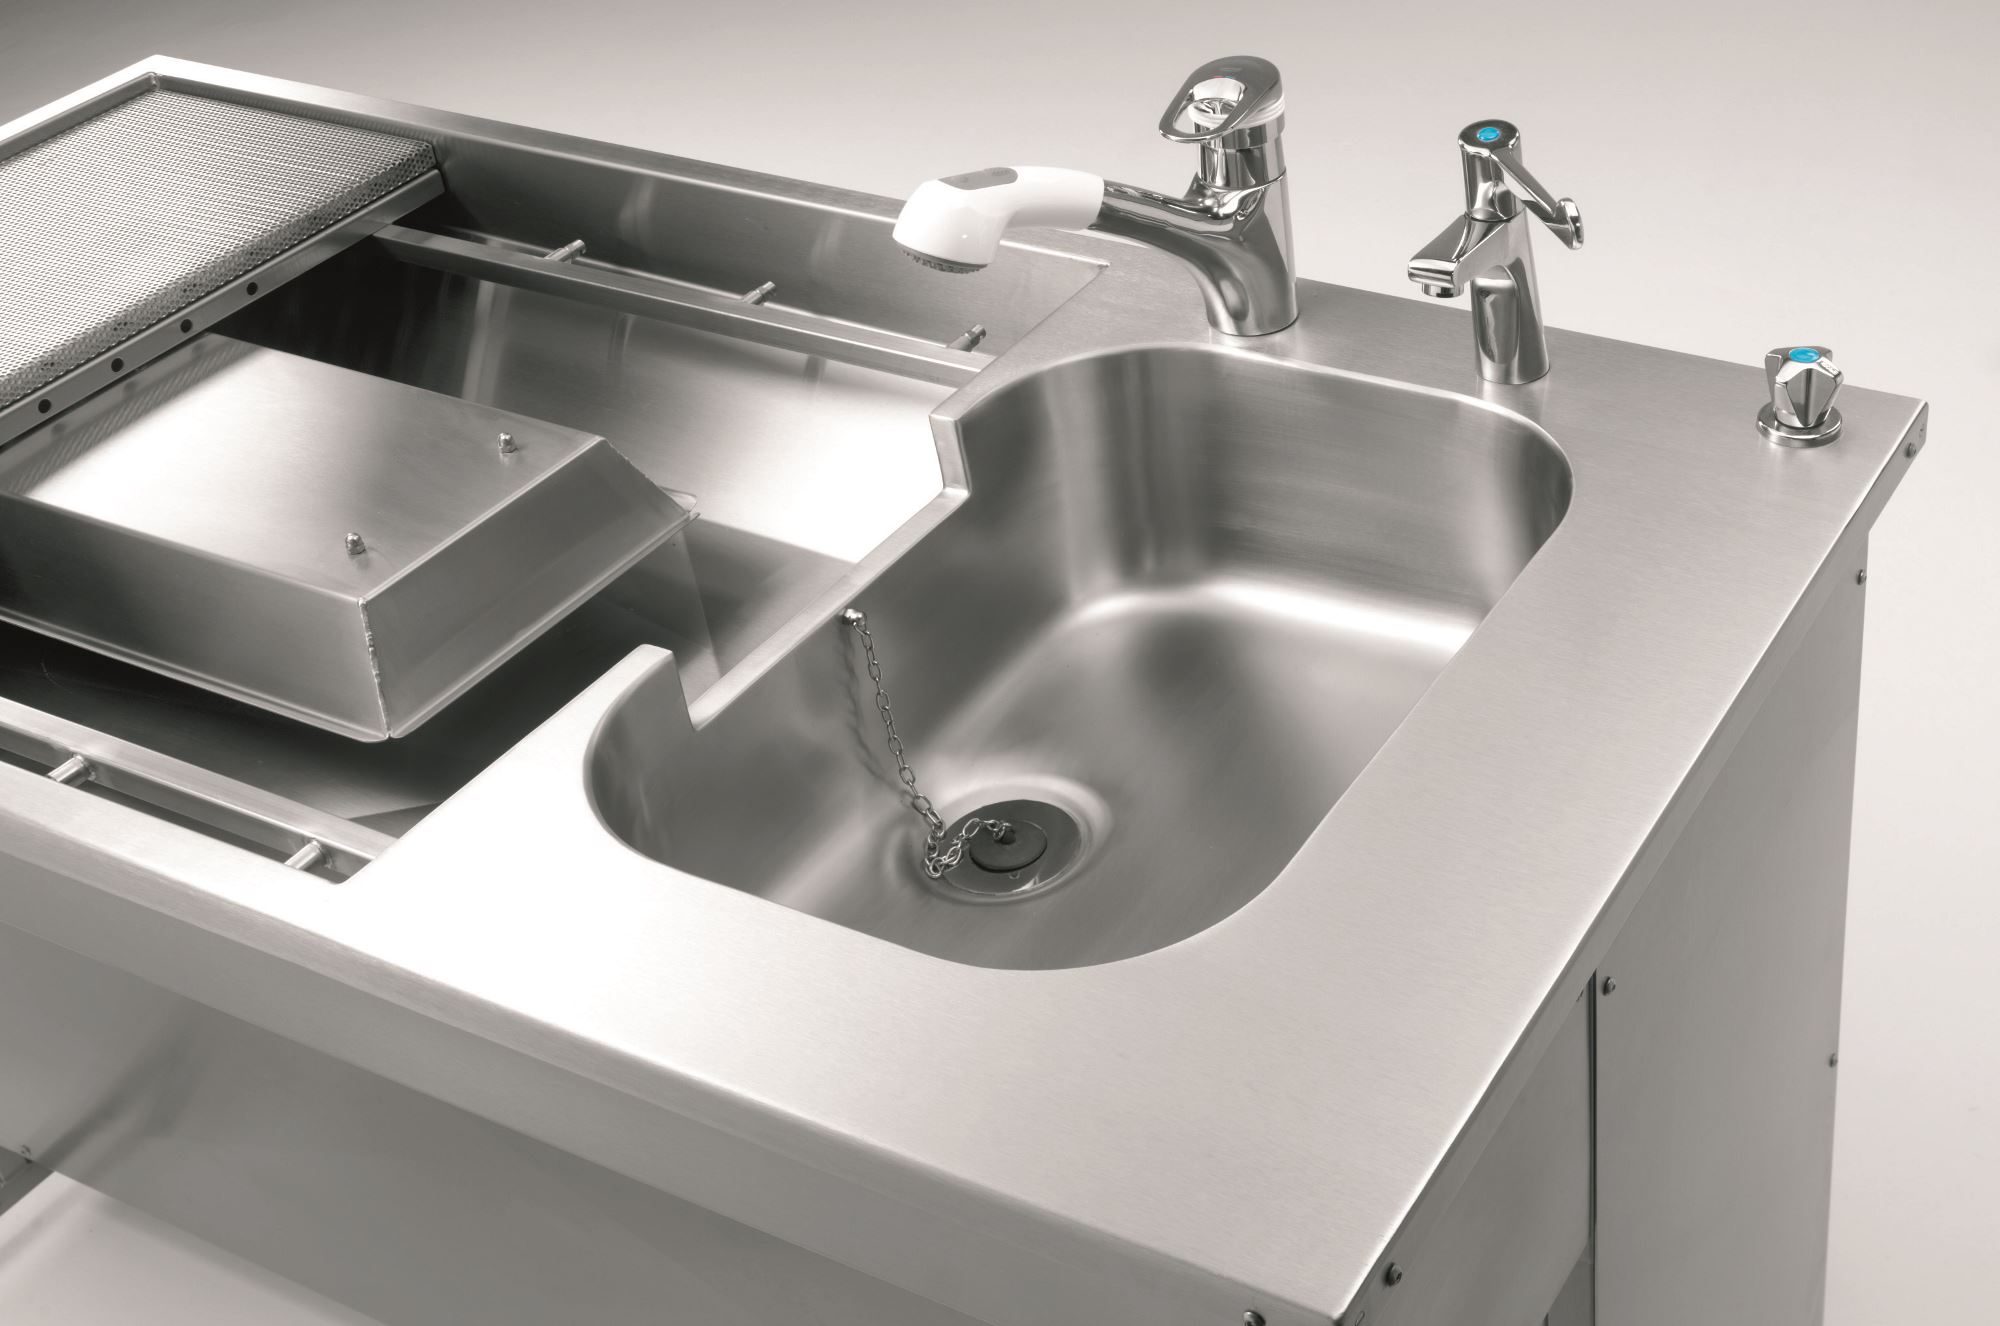 Mac-Care – a new state-of-the-art medical sanitary ware range